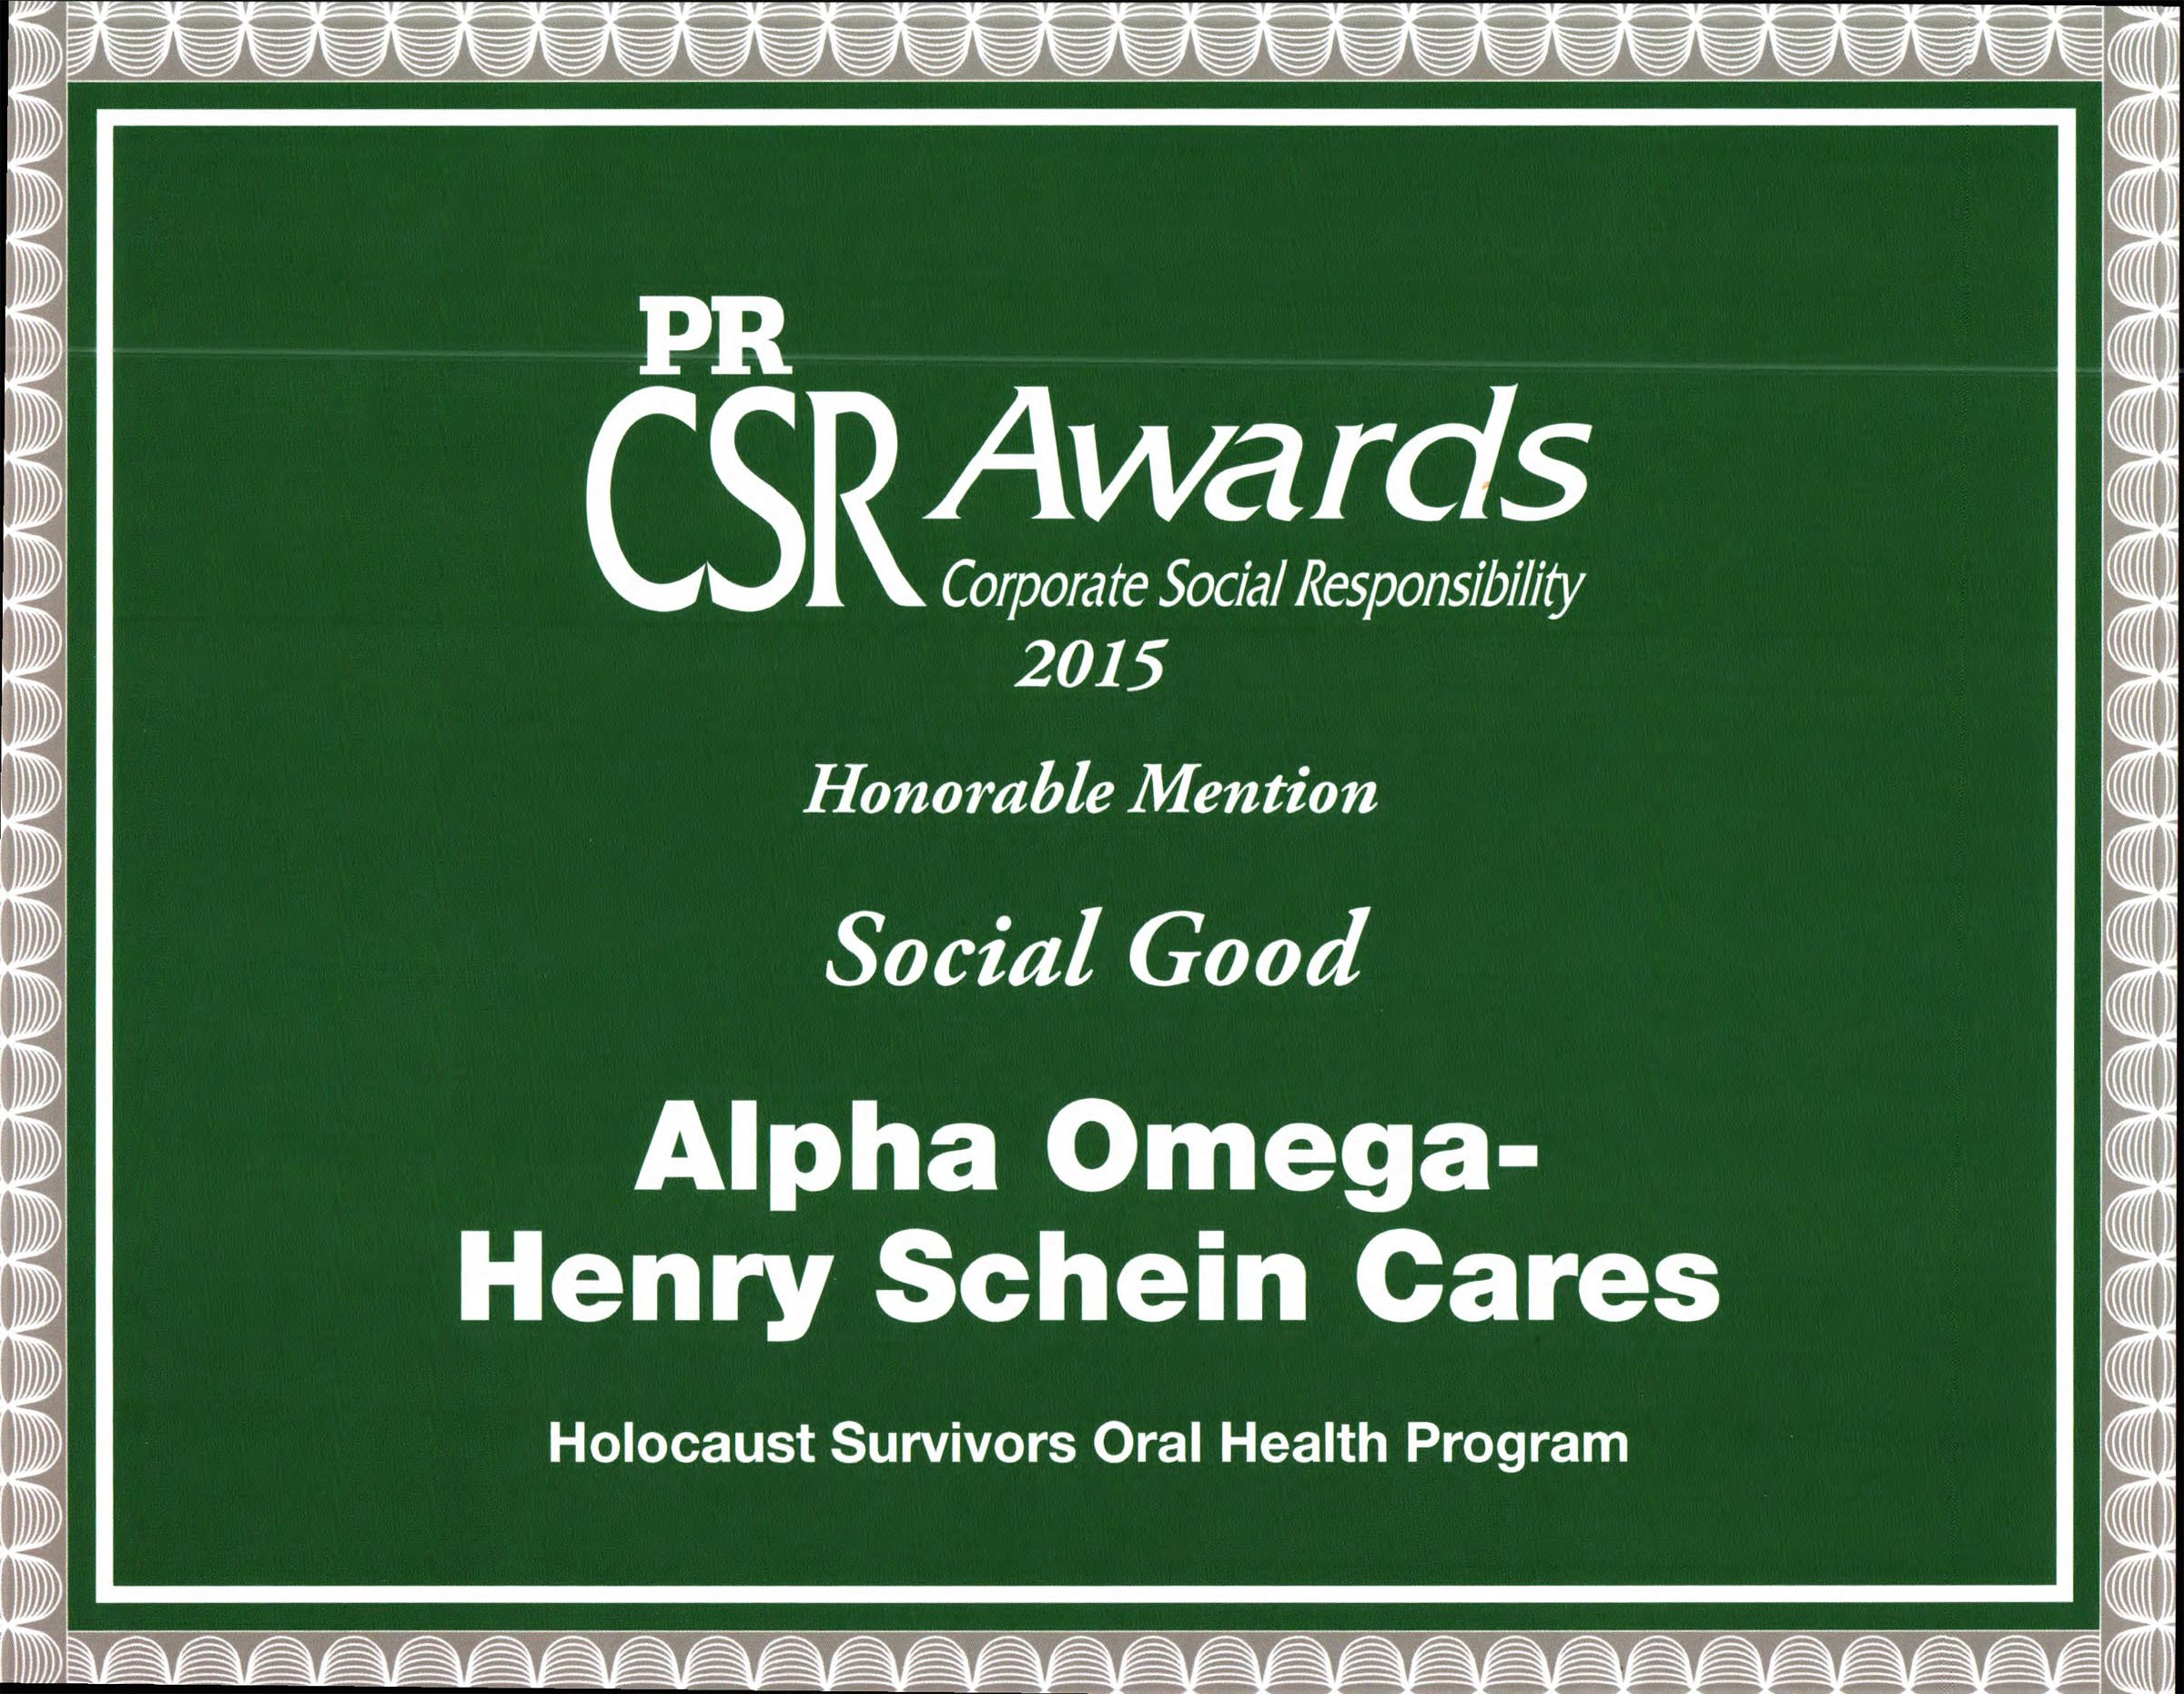 AO-Henry Schein Cares Holocaust Survivors Program Receives Recognition from PR Newswire - March 2015